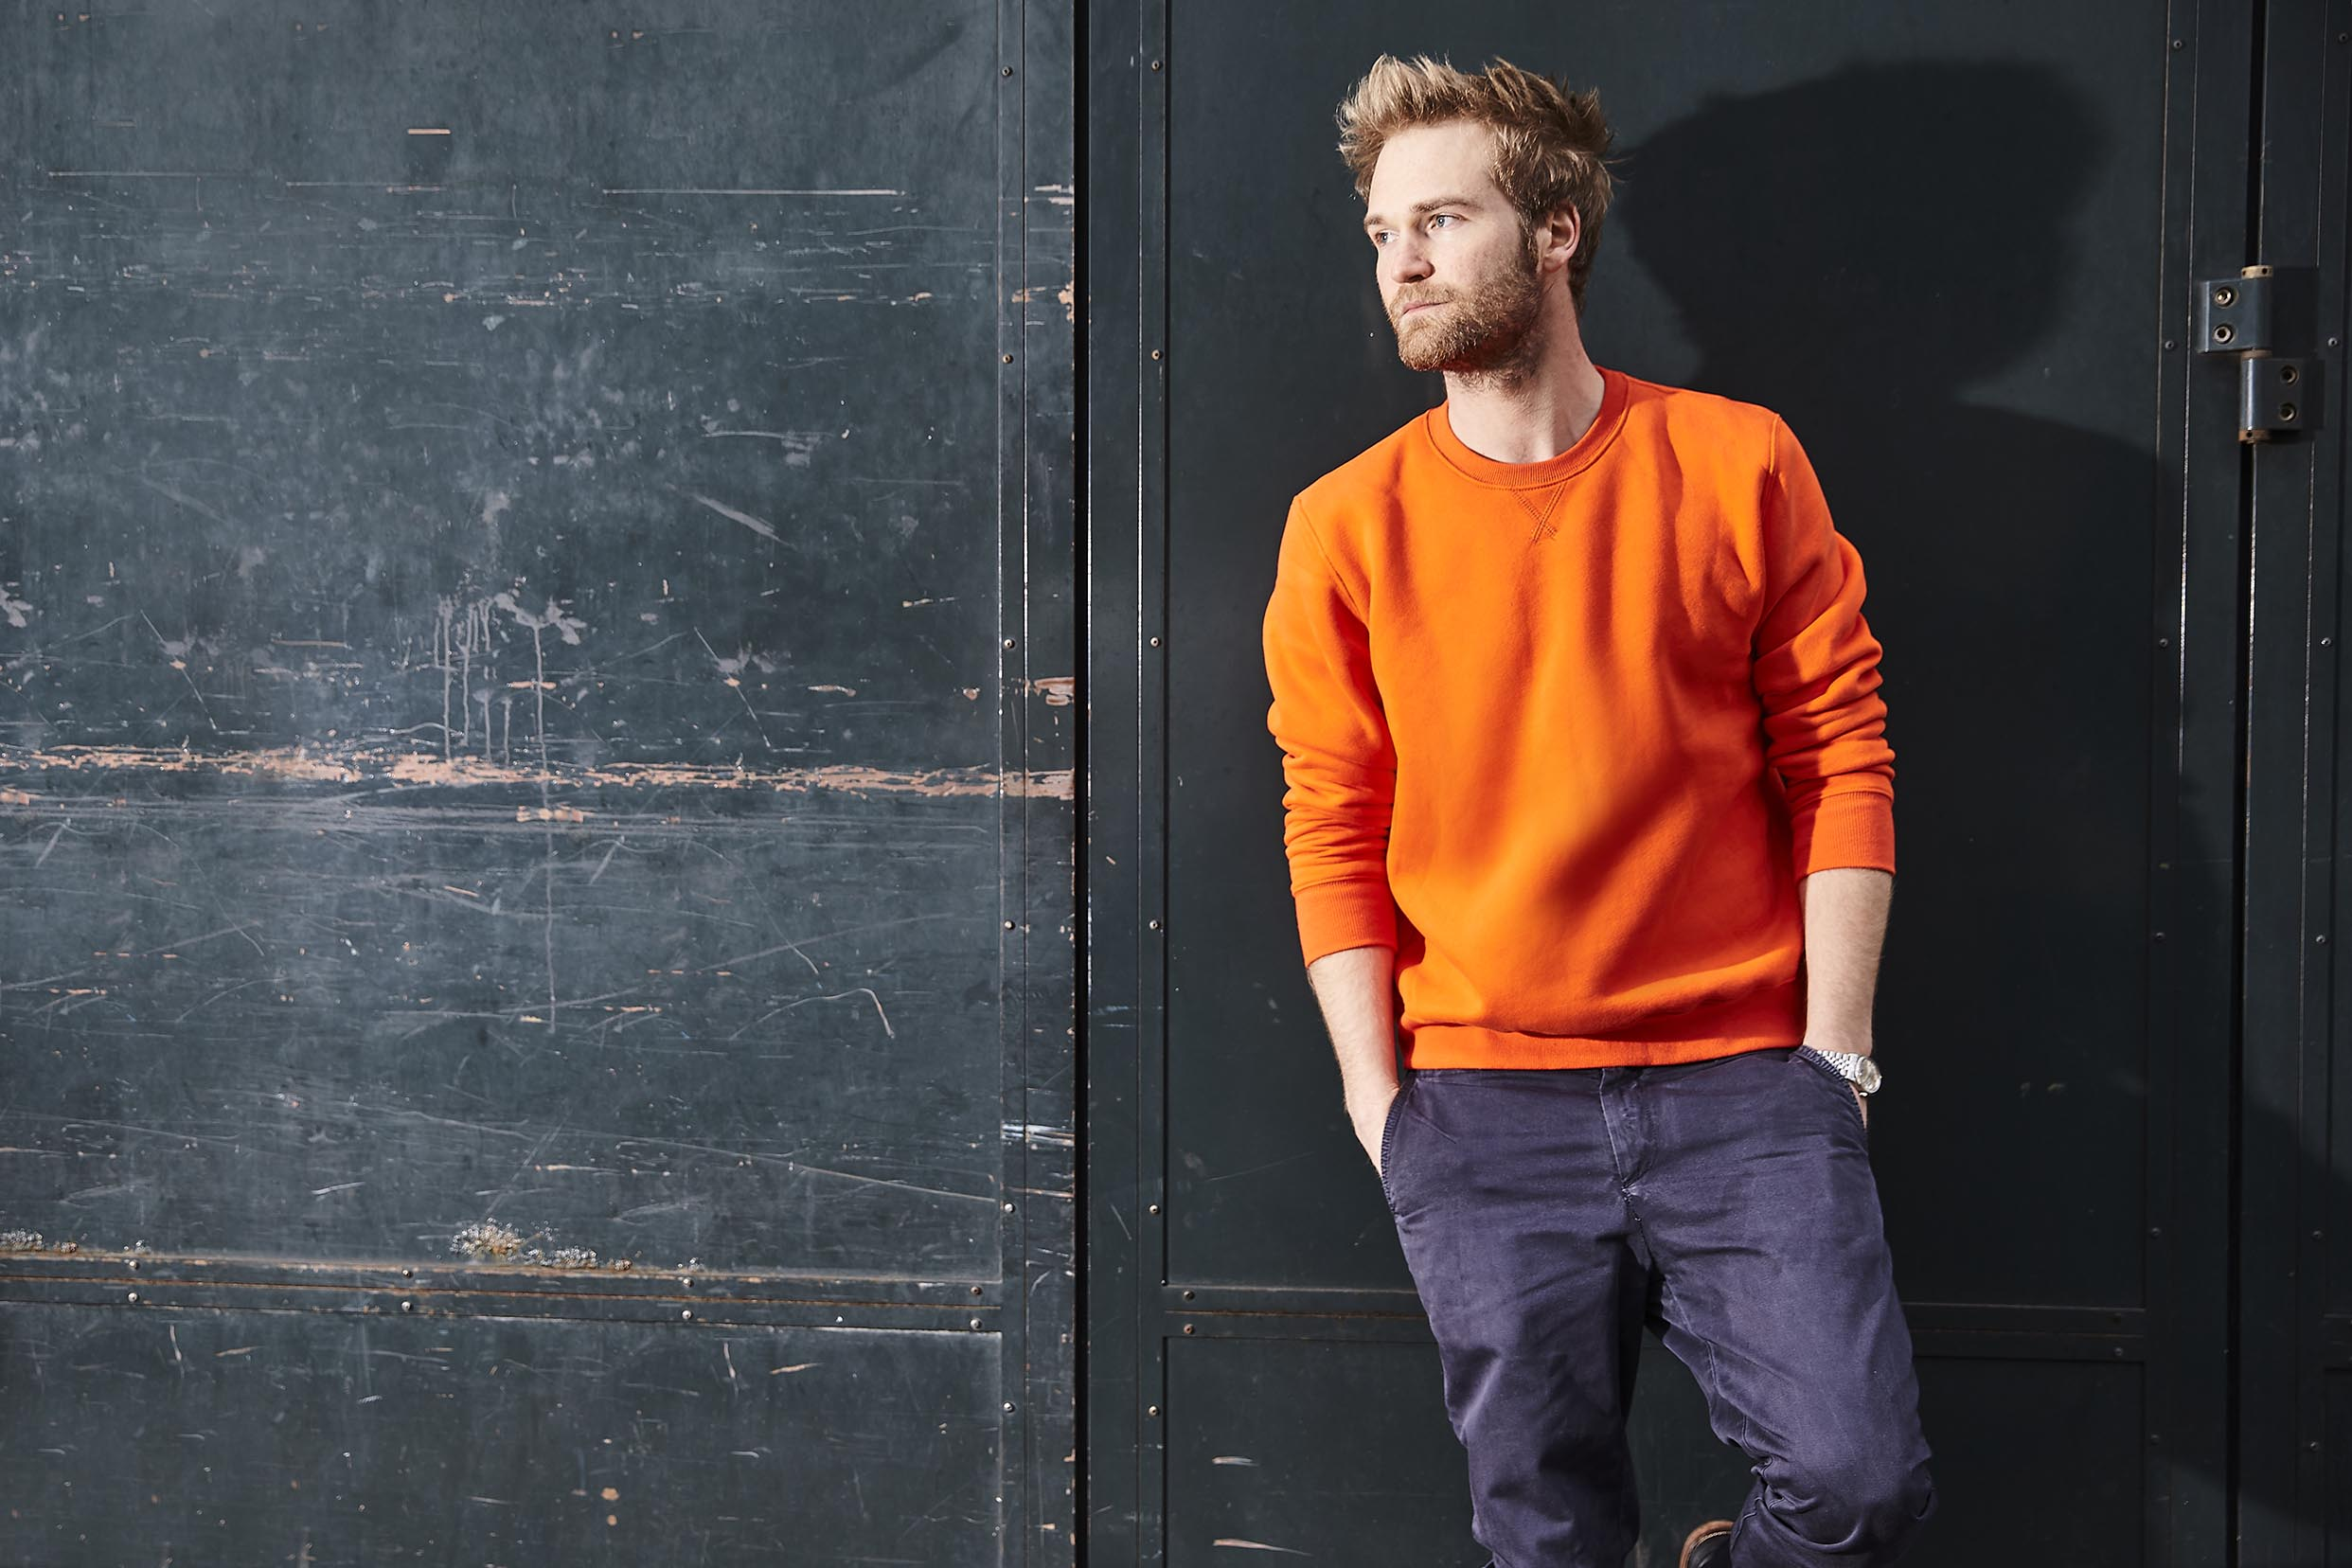 UK Eco-Fabric Company Helping Designers Take an Ethical Stance